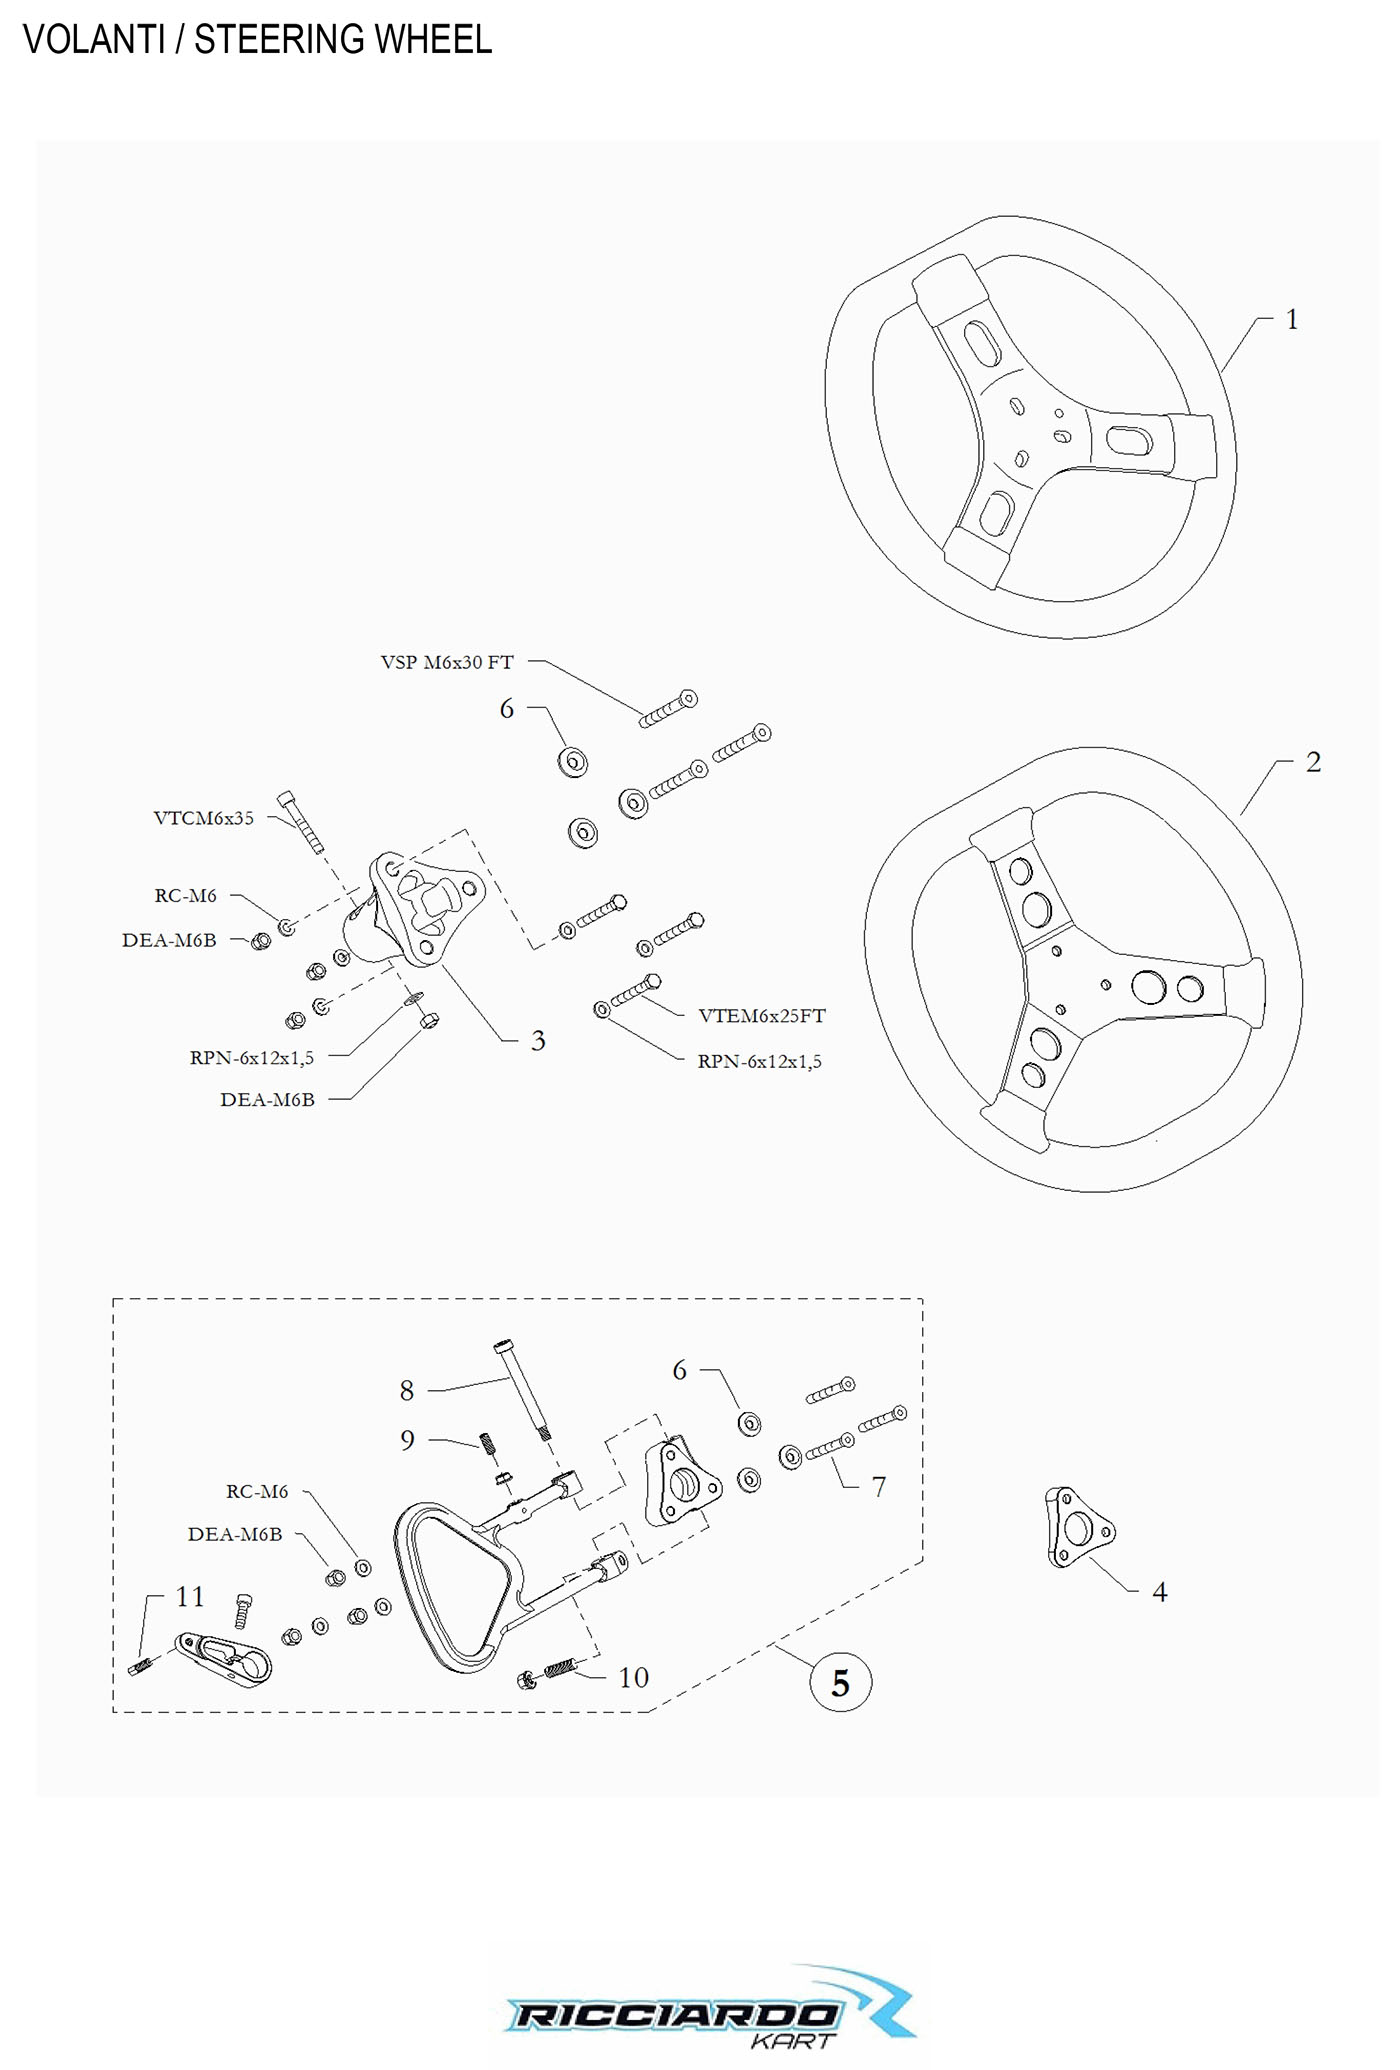 Steering Wheel Parts Diagram  U2013 Ricciardo Kart